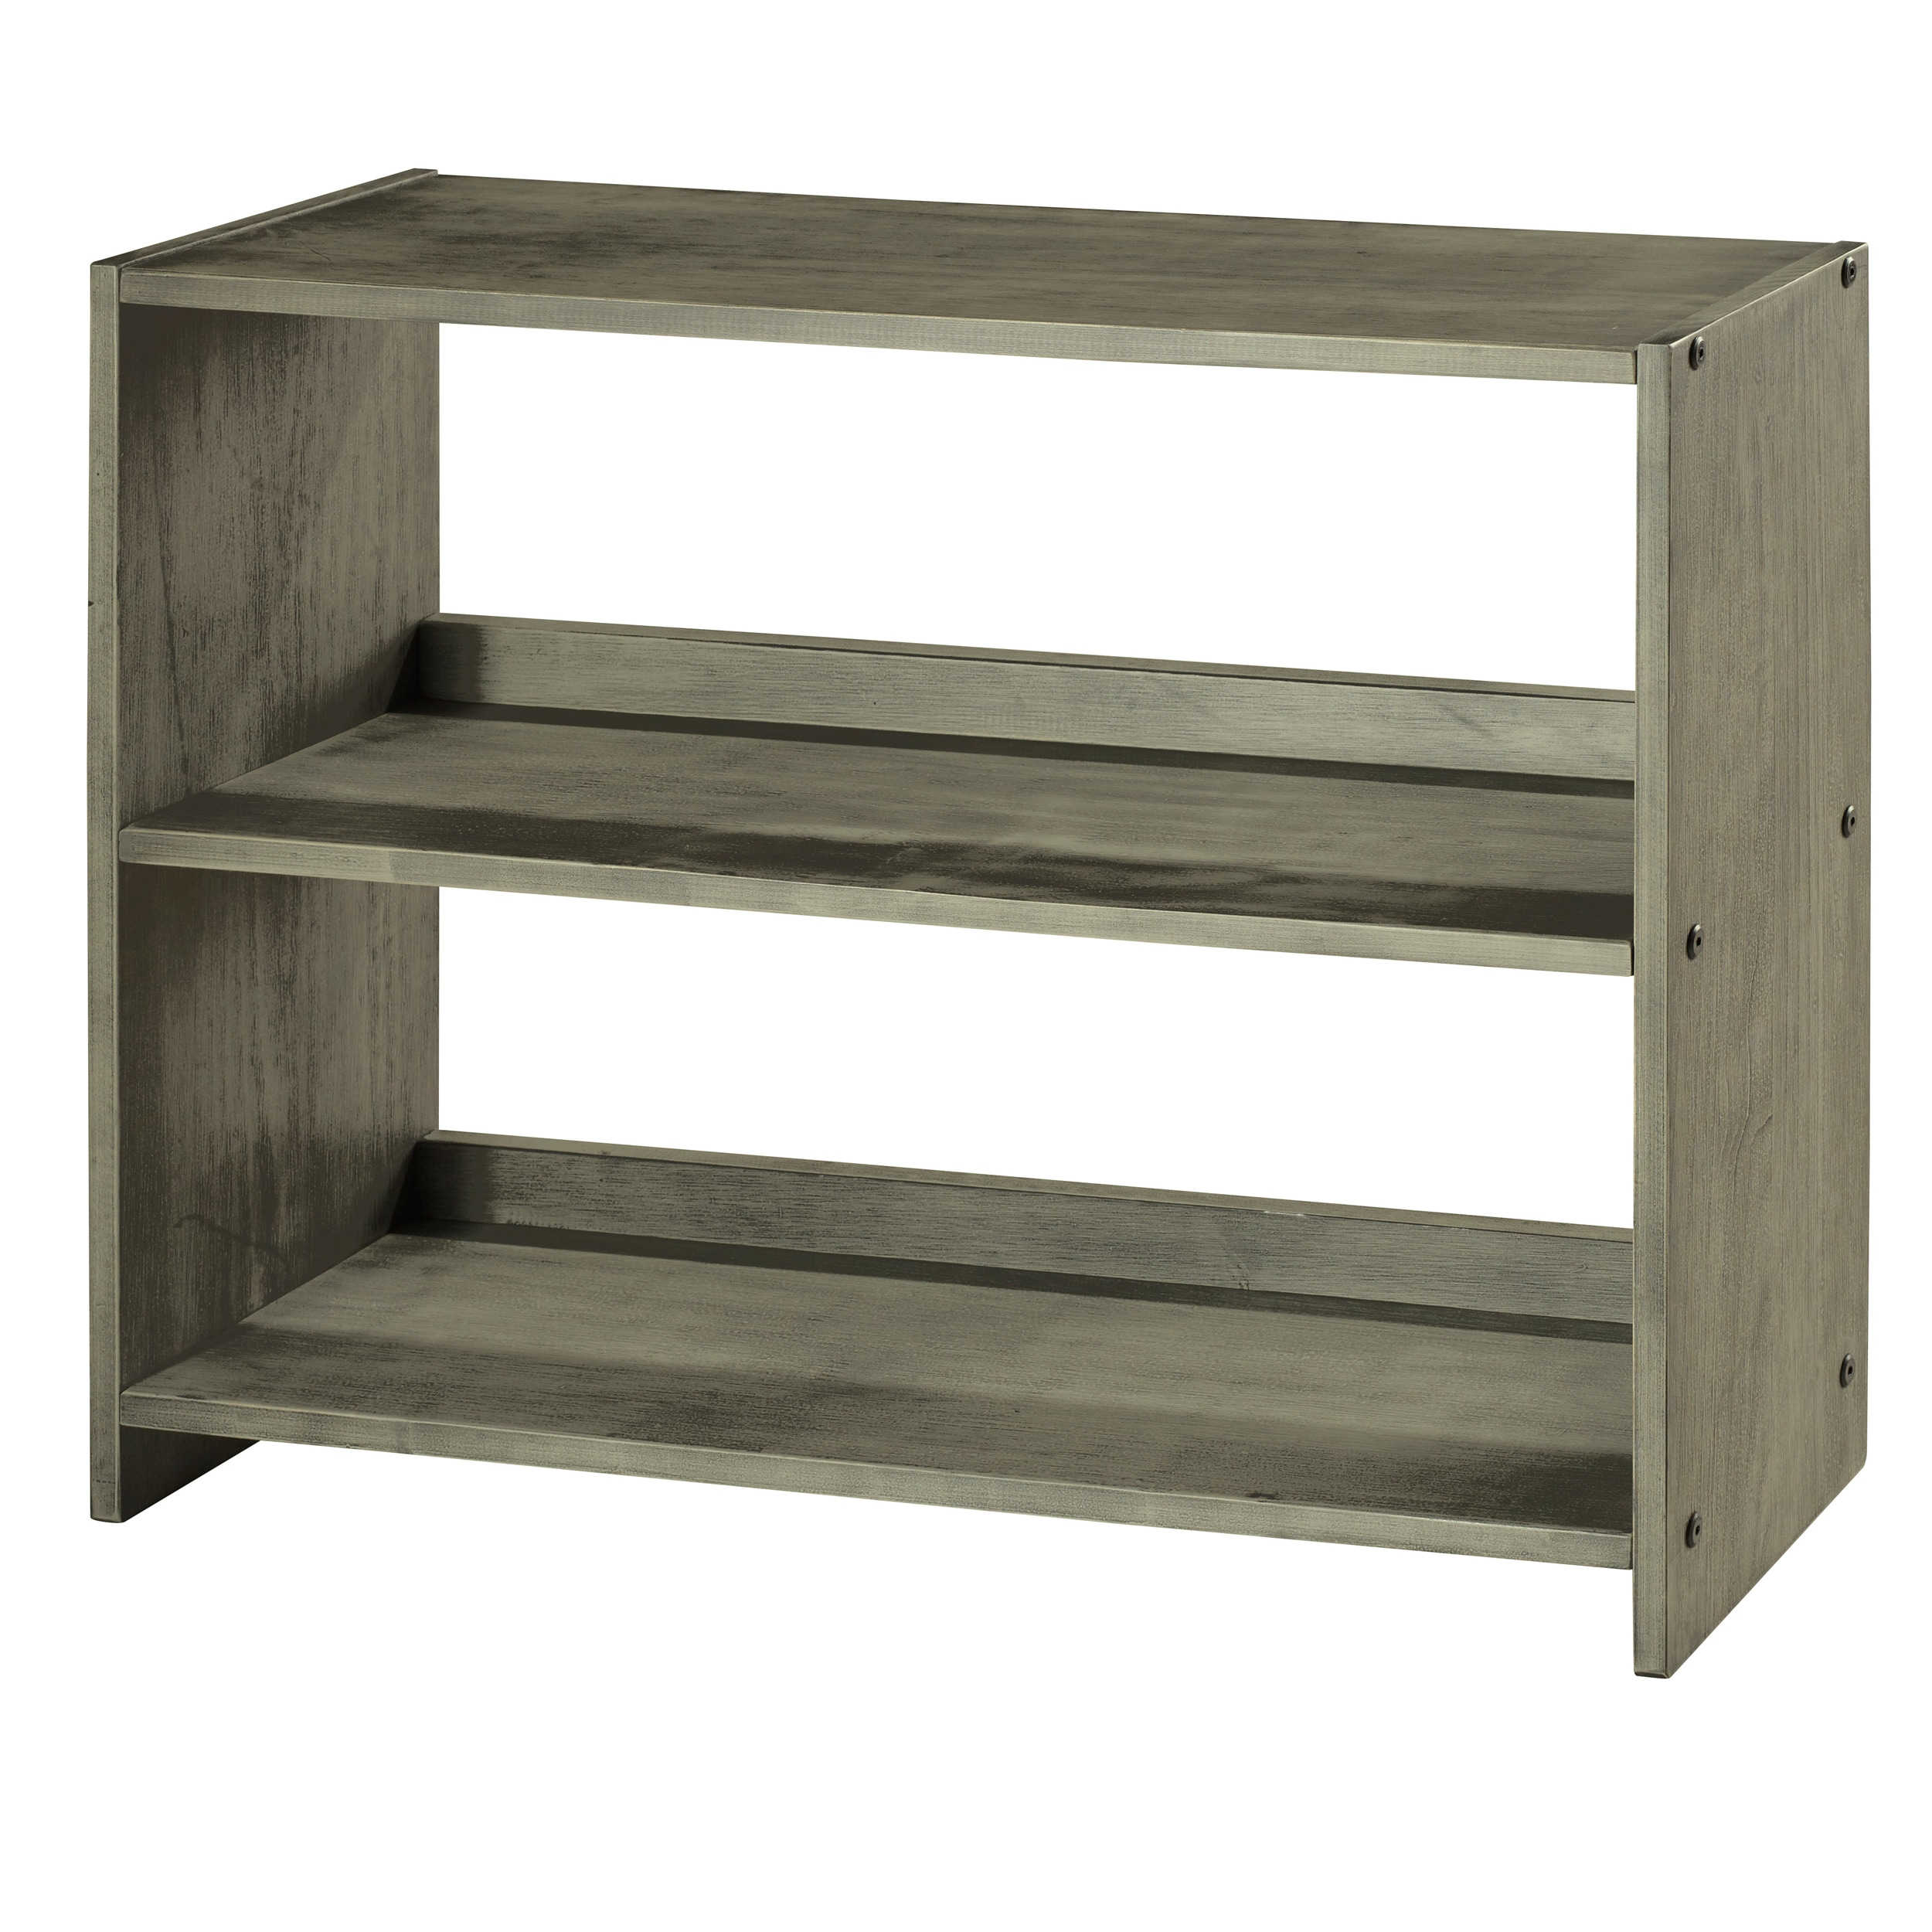 oak products portland small s ppbcs and furniture painted bookcase